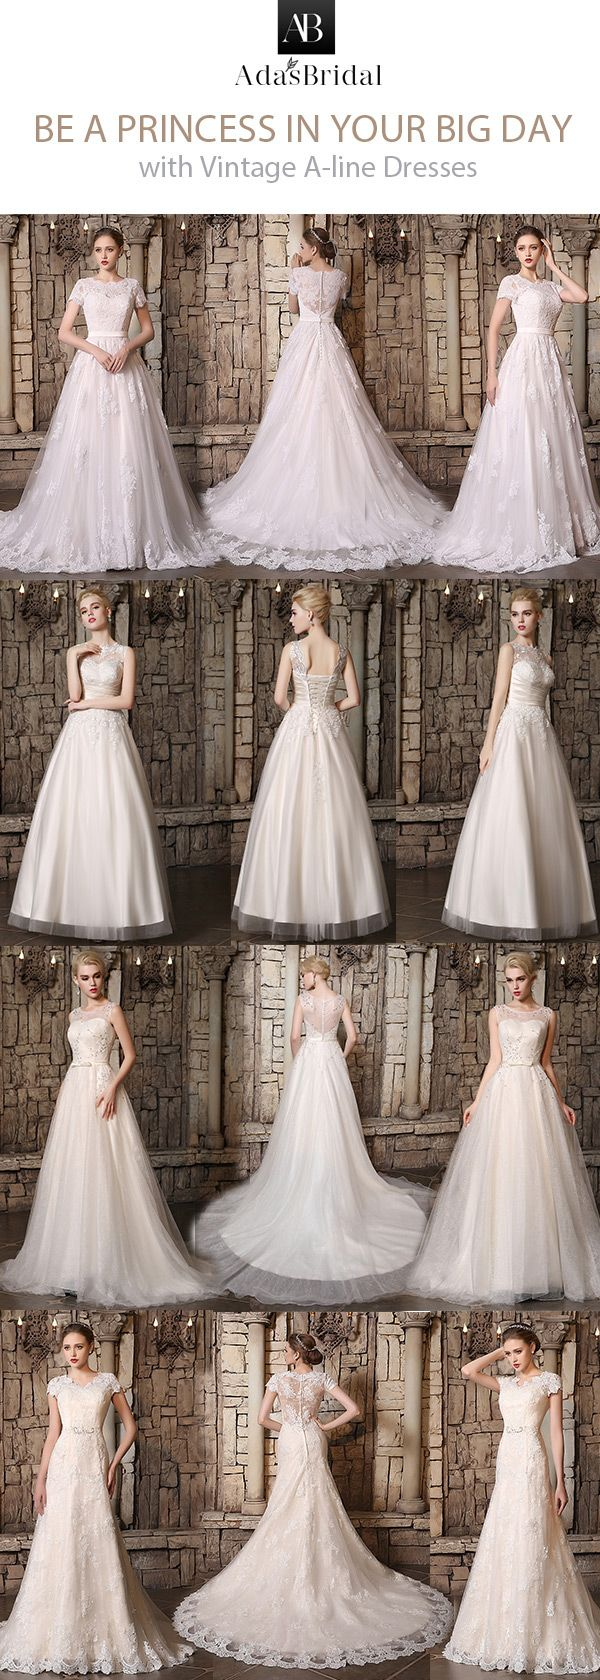 Aline wedding dresses is the best choice for all body shapes, and vintage style is the most classical in the fashion. - Adasbridal.com